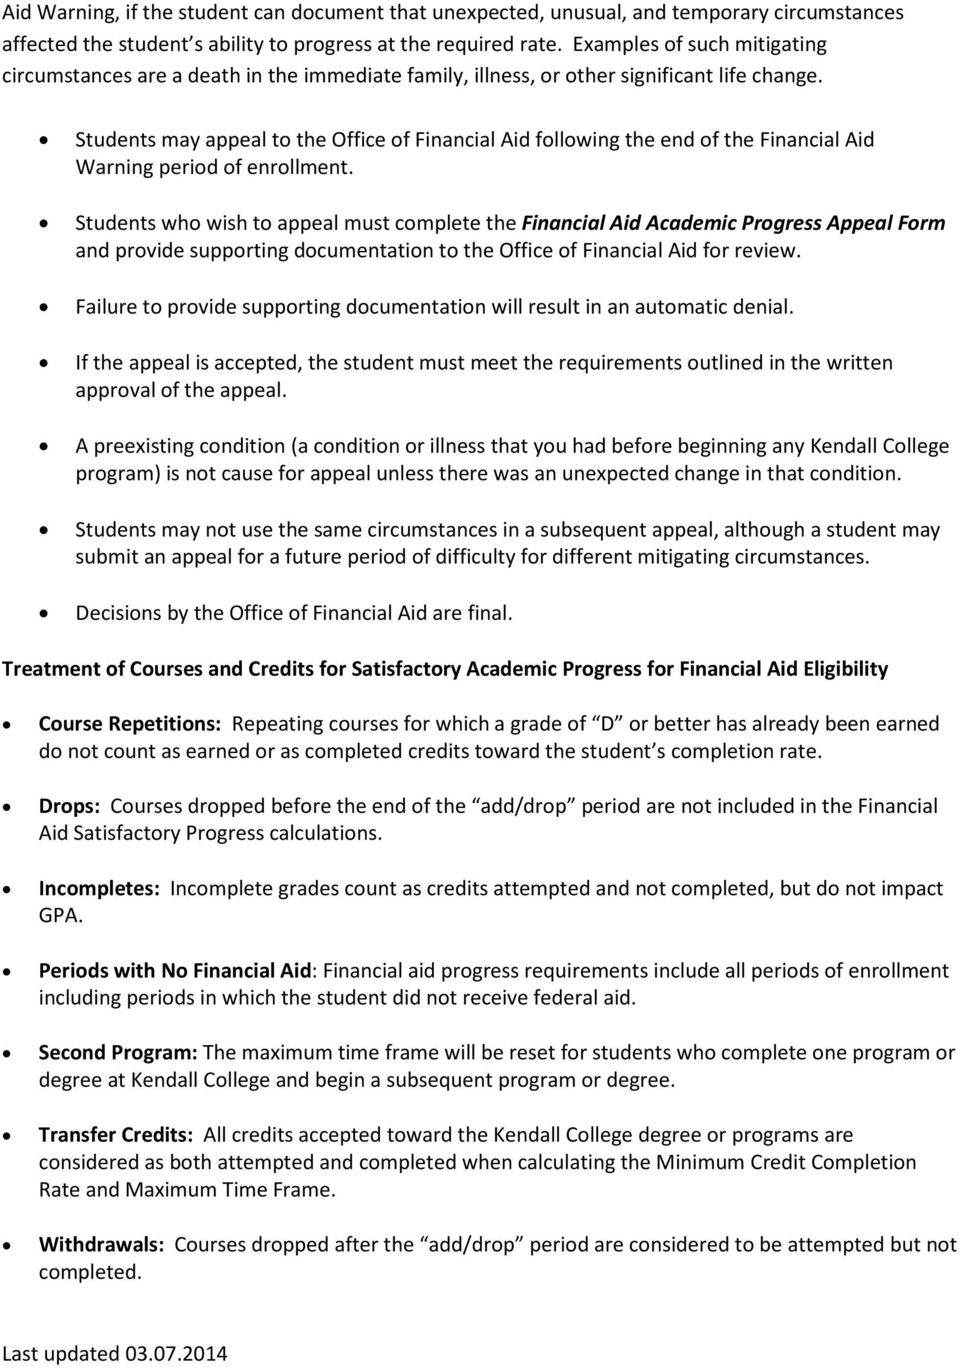 Students may appeal to the Office of Financial Aid following the end of the Financial Aid Warning period of enrollment.